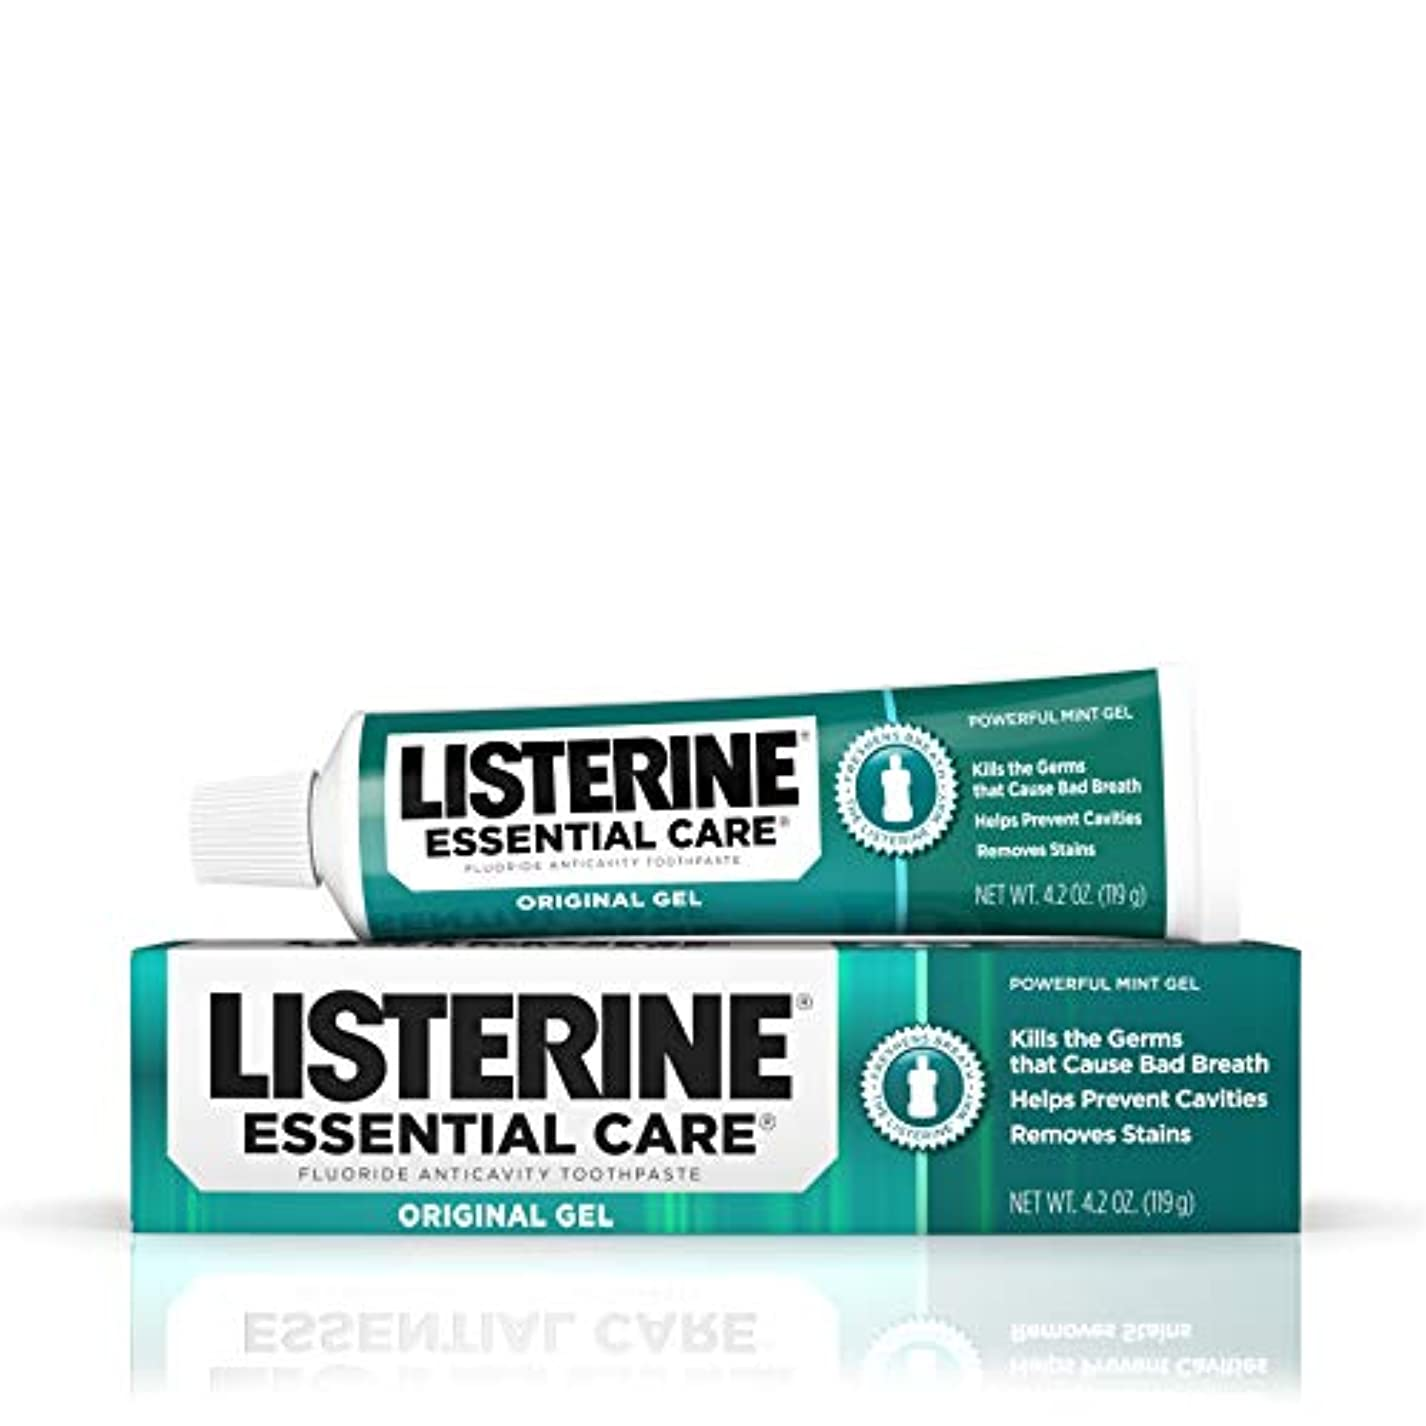 つぶやきジェット空の海外直送品Listerine Essential Care Toothpaste Gel Original, Powerful Mint 4.2 oz by Listerine